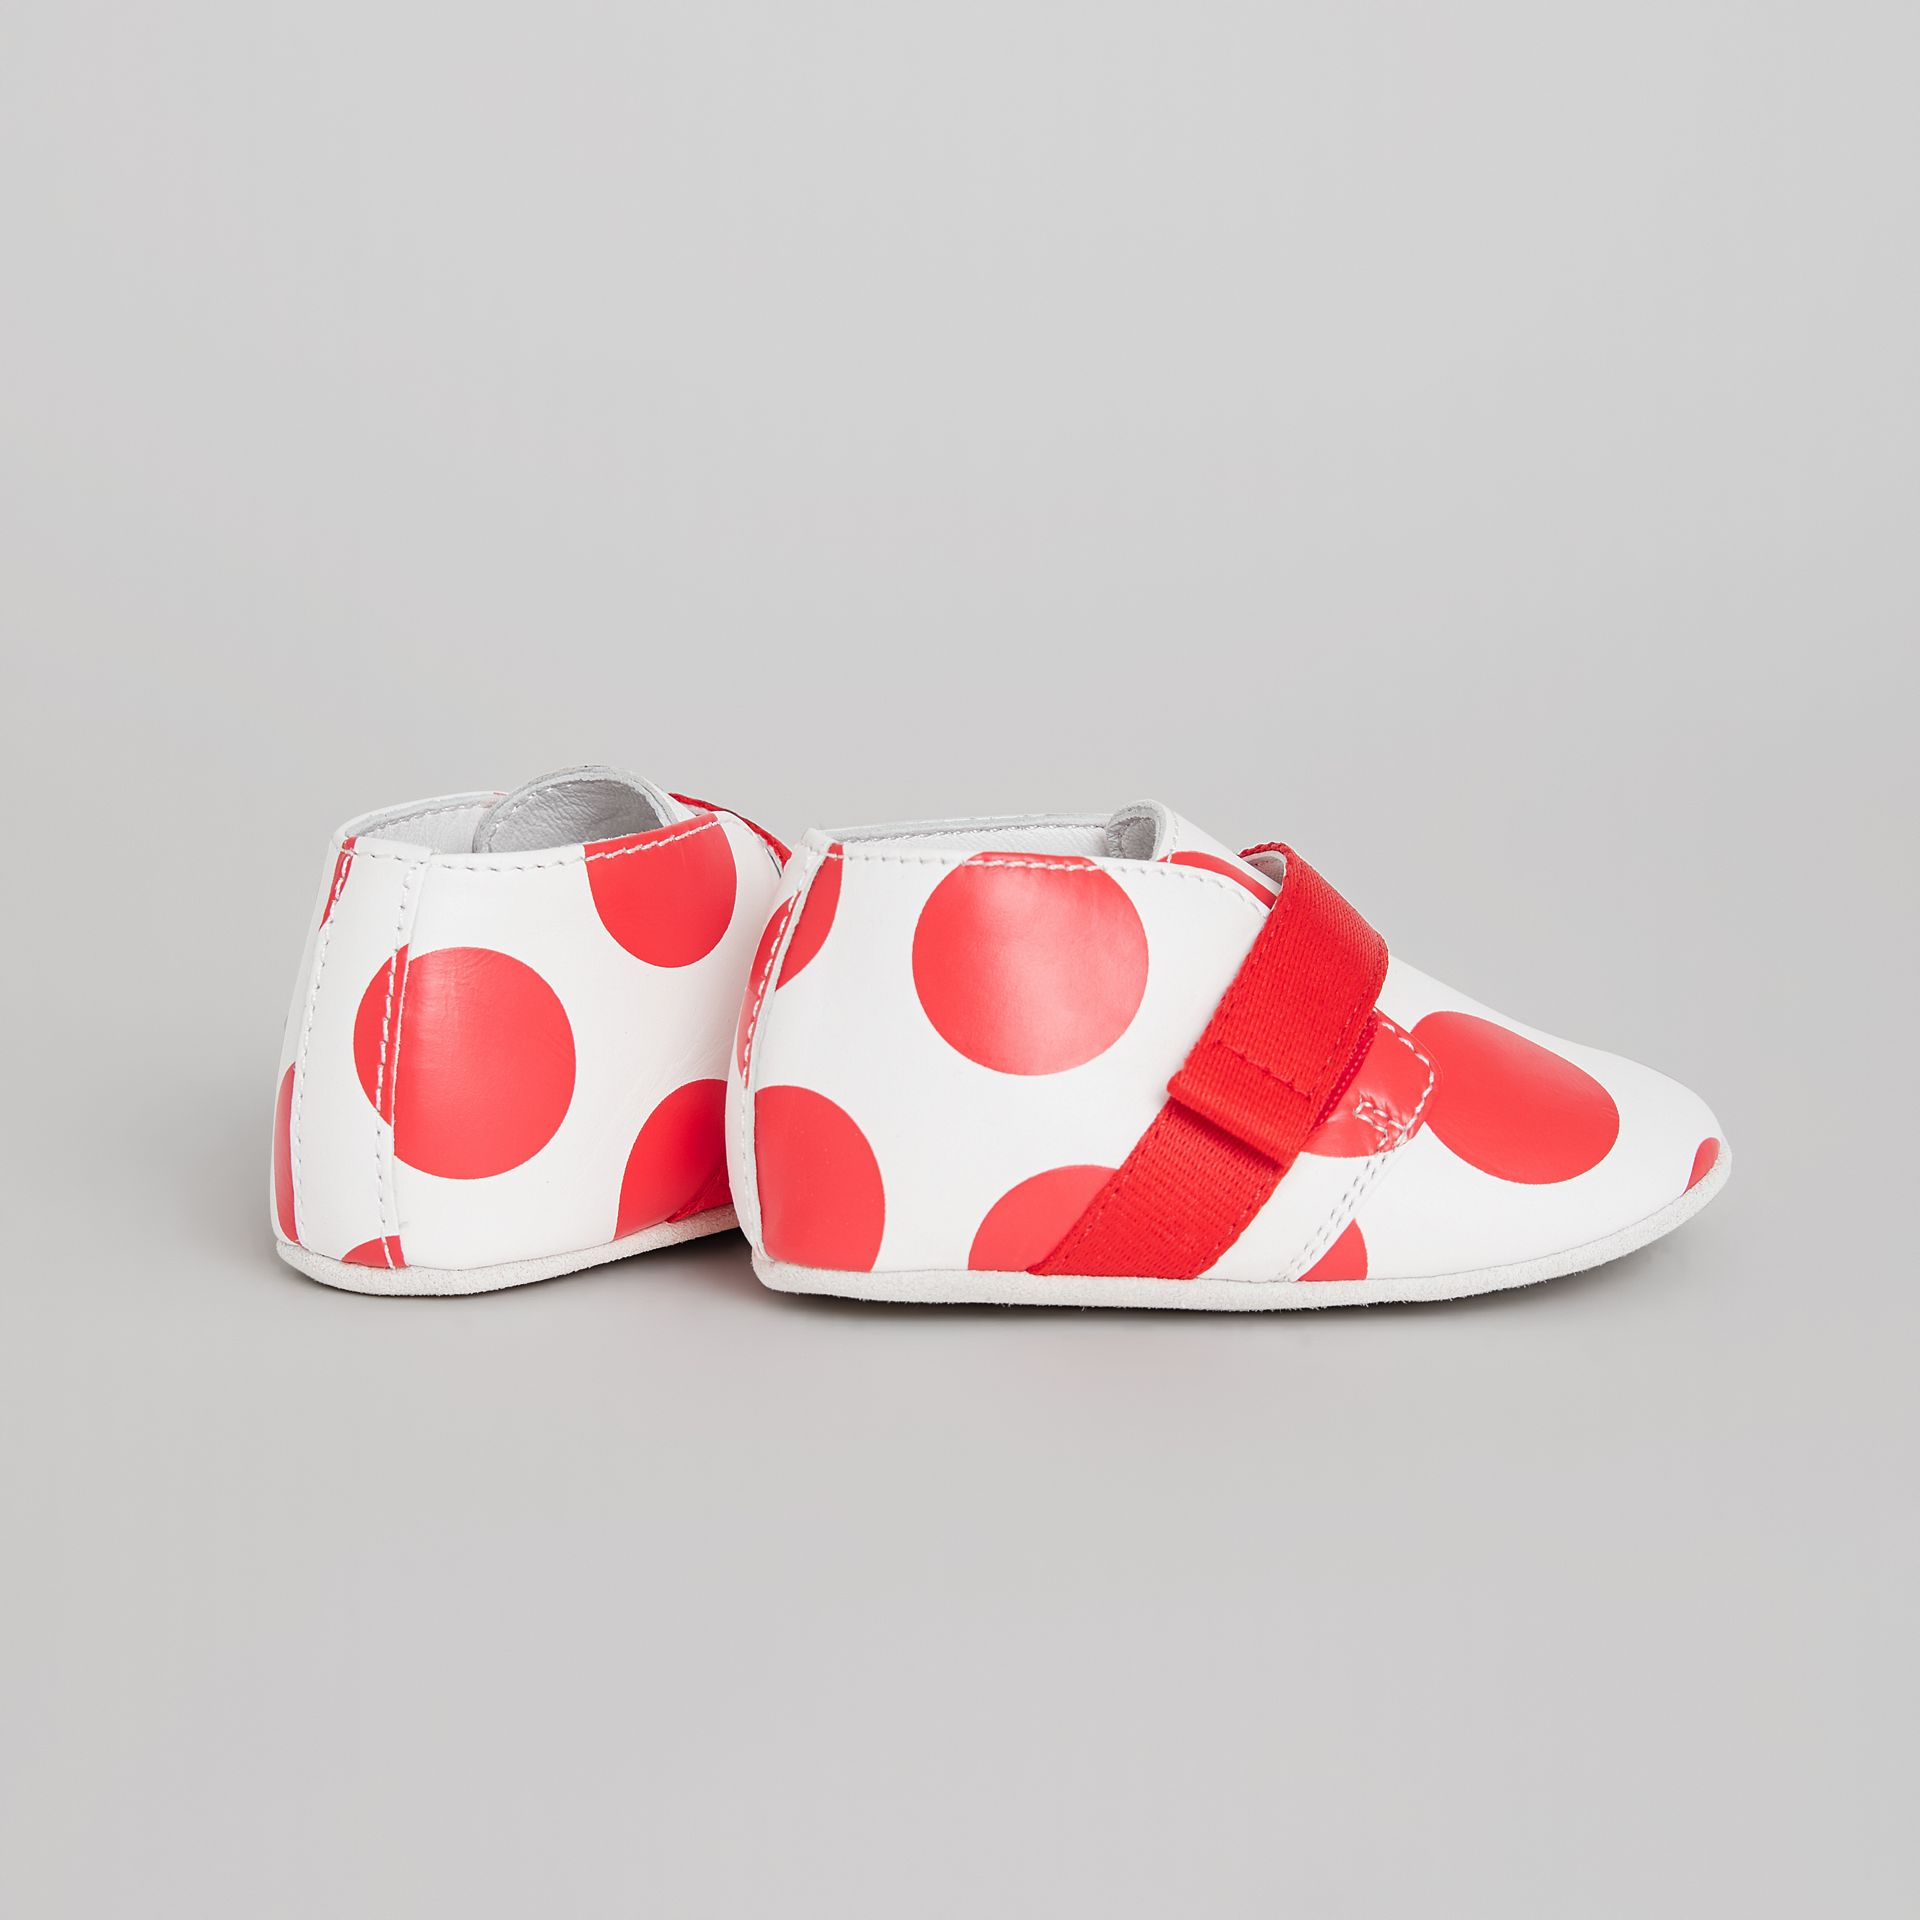 Spot Print Leather Shoes in Bright Red - Children | Burberry United States - gallery image 2